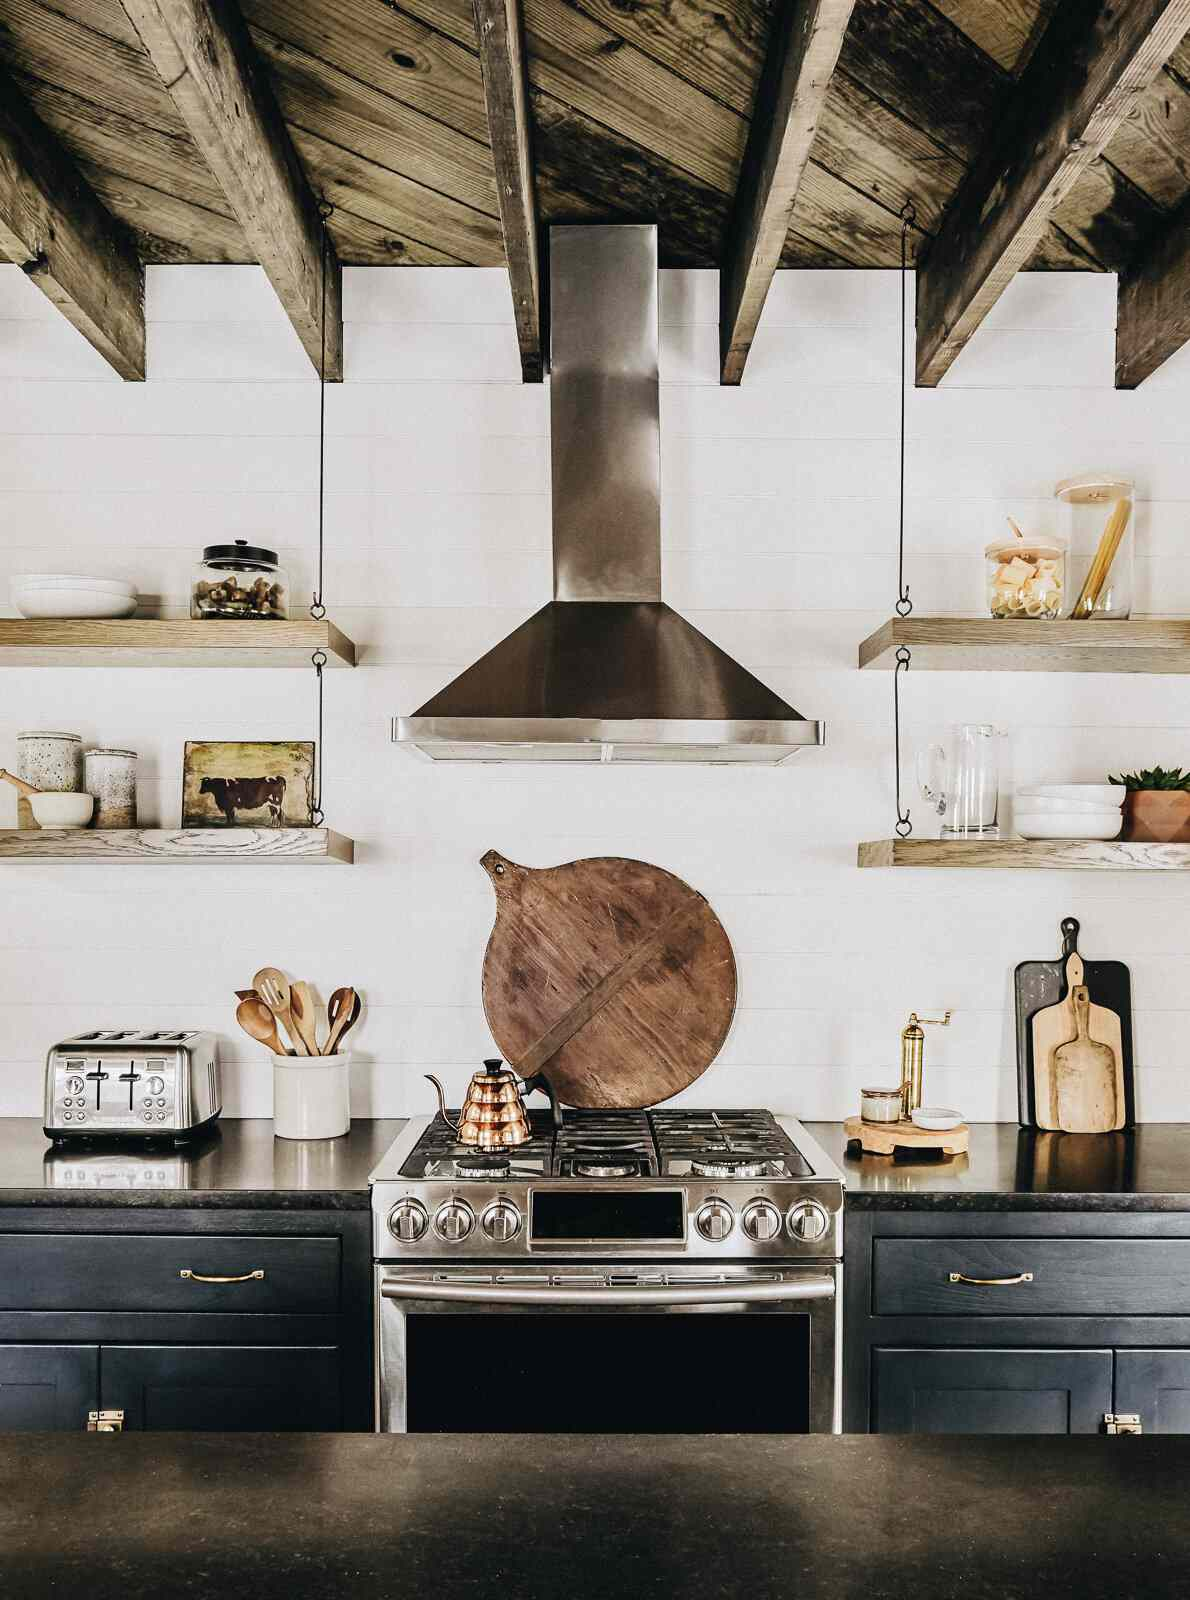 A rustic kitchen with a wood-lined ceiling and several hanging wooden shelves